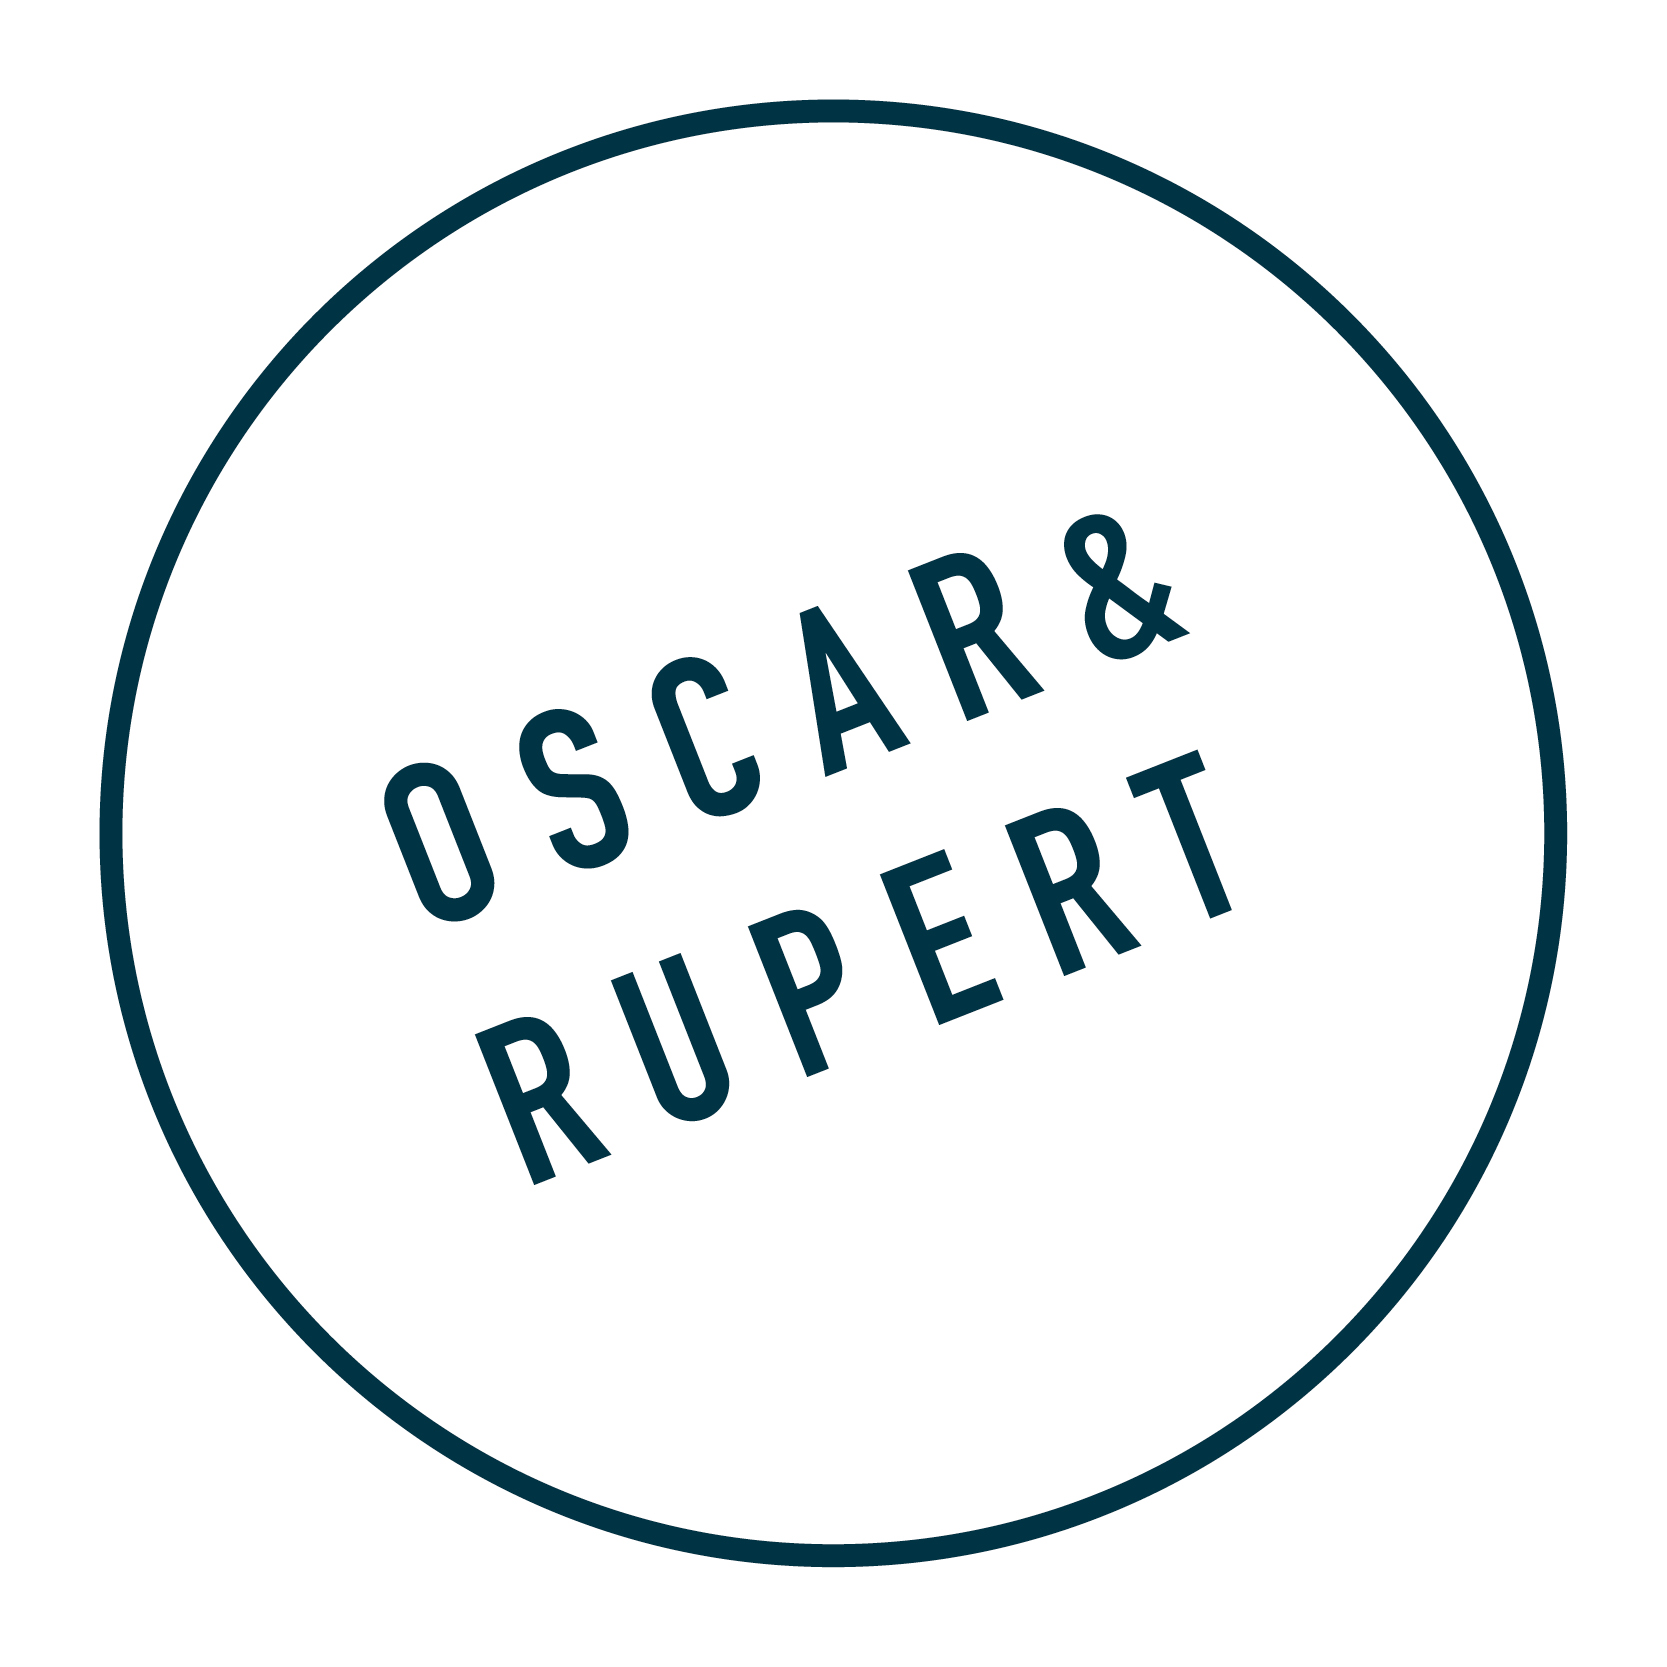 Oscar&Rupert Present Doggie friendly cinema experience